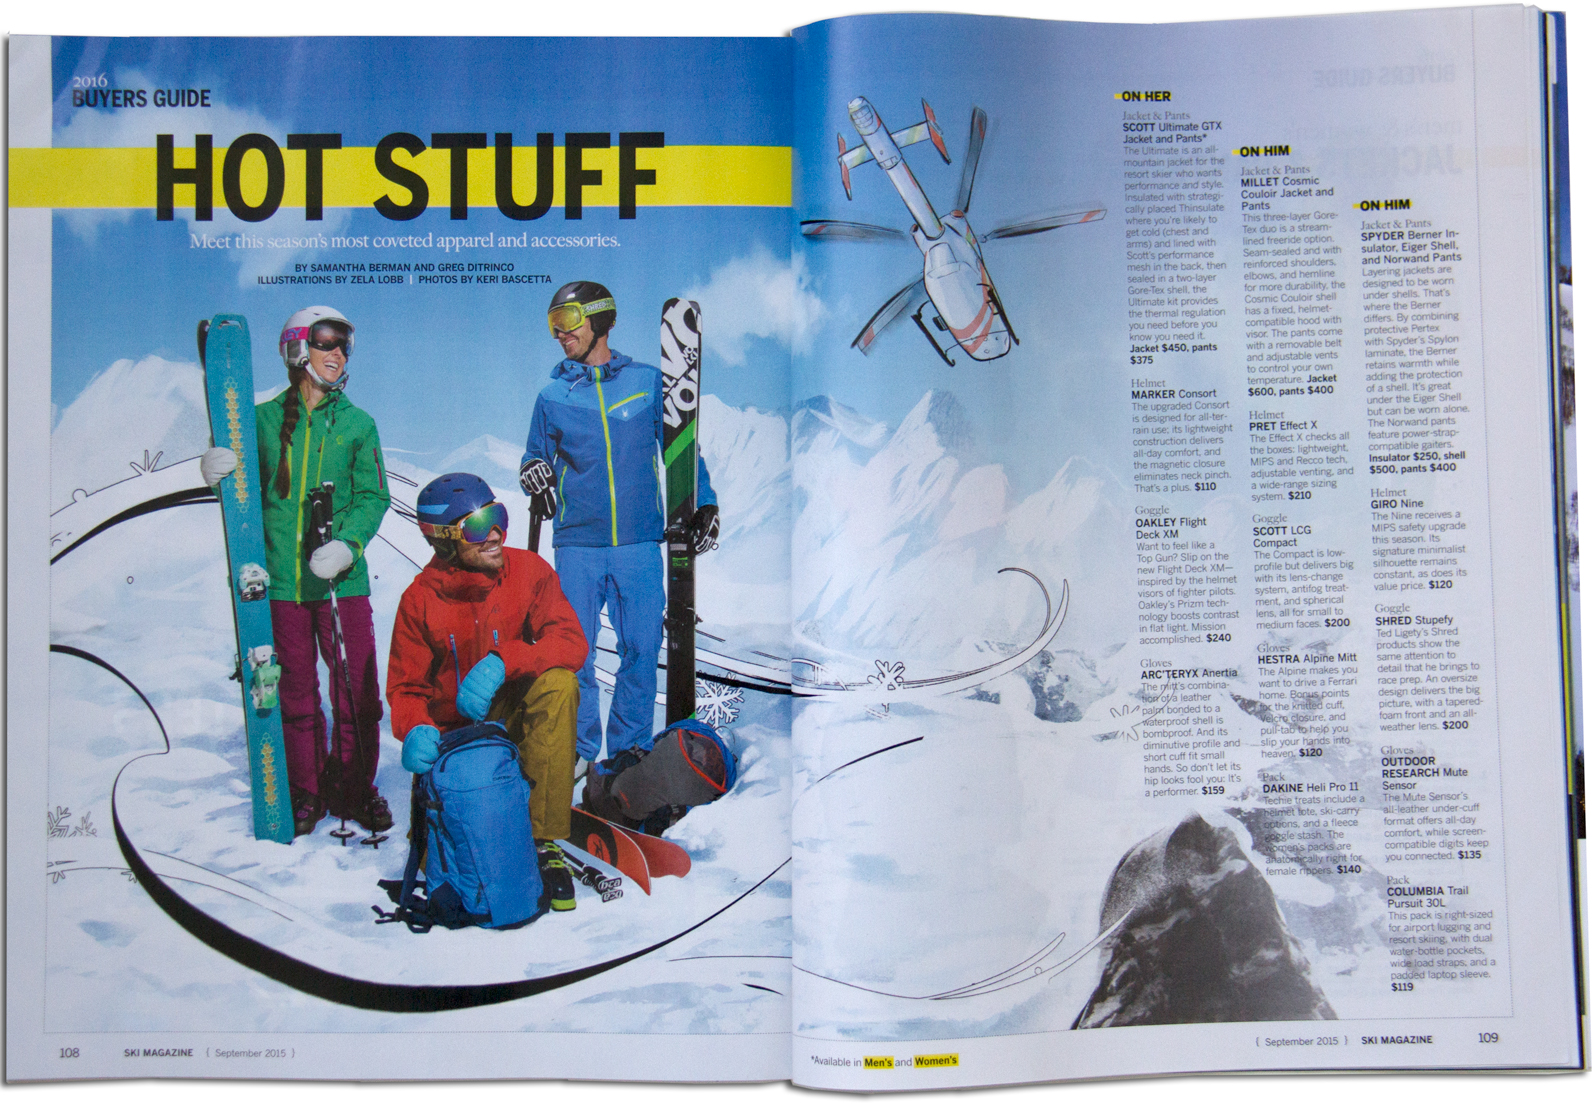 buyers guide 2016 ski magazine zela lobb rh zelalobb com ski magazine buyers guide 2016 ski magazine buyers guide 2017 boots